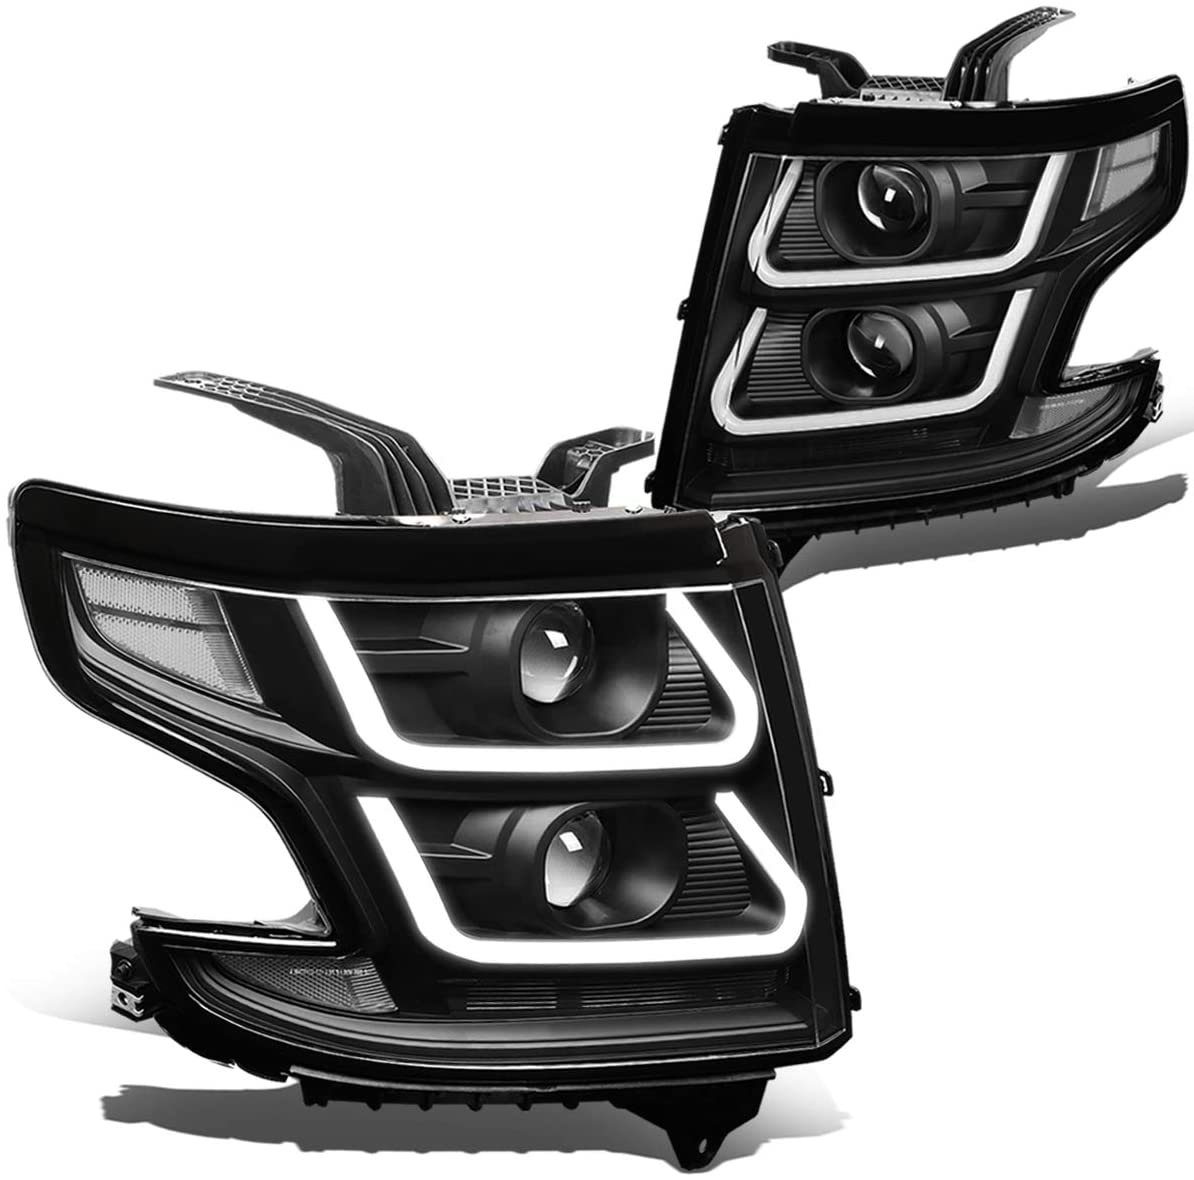 DNA MOTORING HL-3D-SUB15-BK-CL1 Dual Projector+LED DRL Headlight [for 15-18 Chevy Suburban/Tahoe]